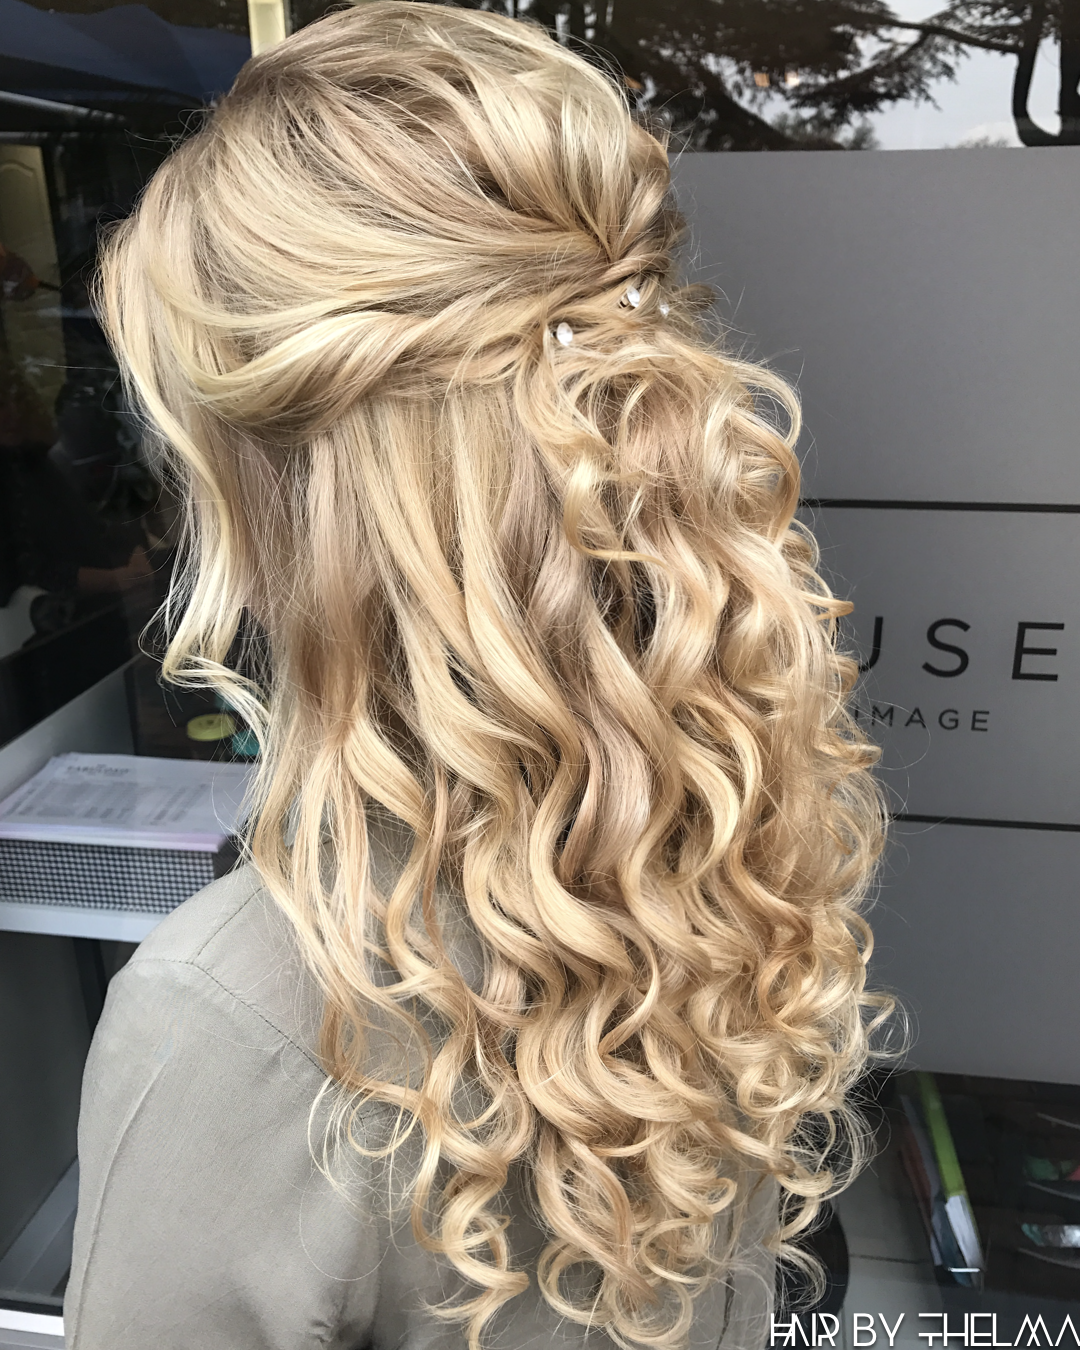 Pin by amy raynor on hair pinterest prom hair hair and hair styles